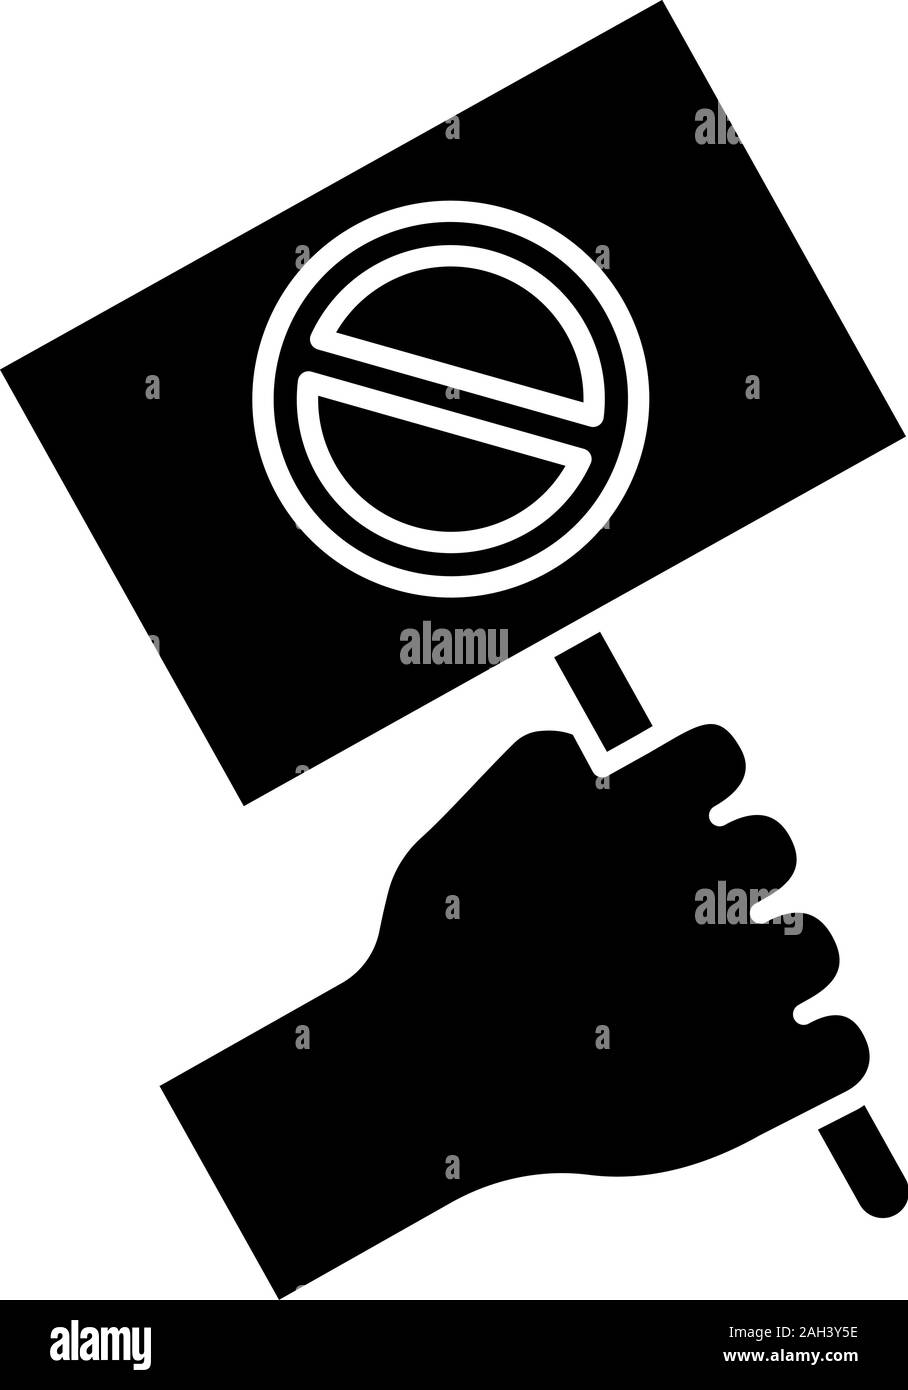 Protest banner in hand glyph icon. Protester'€™s or activist'€™s hand. Demonstration, meeting. Protest placard. Social and political movement. Silhoue Stock Vector